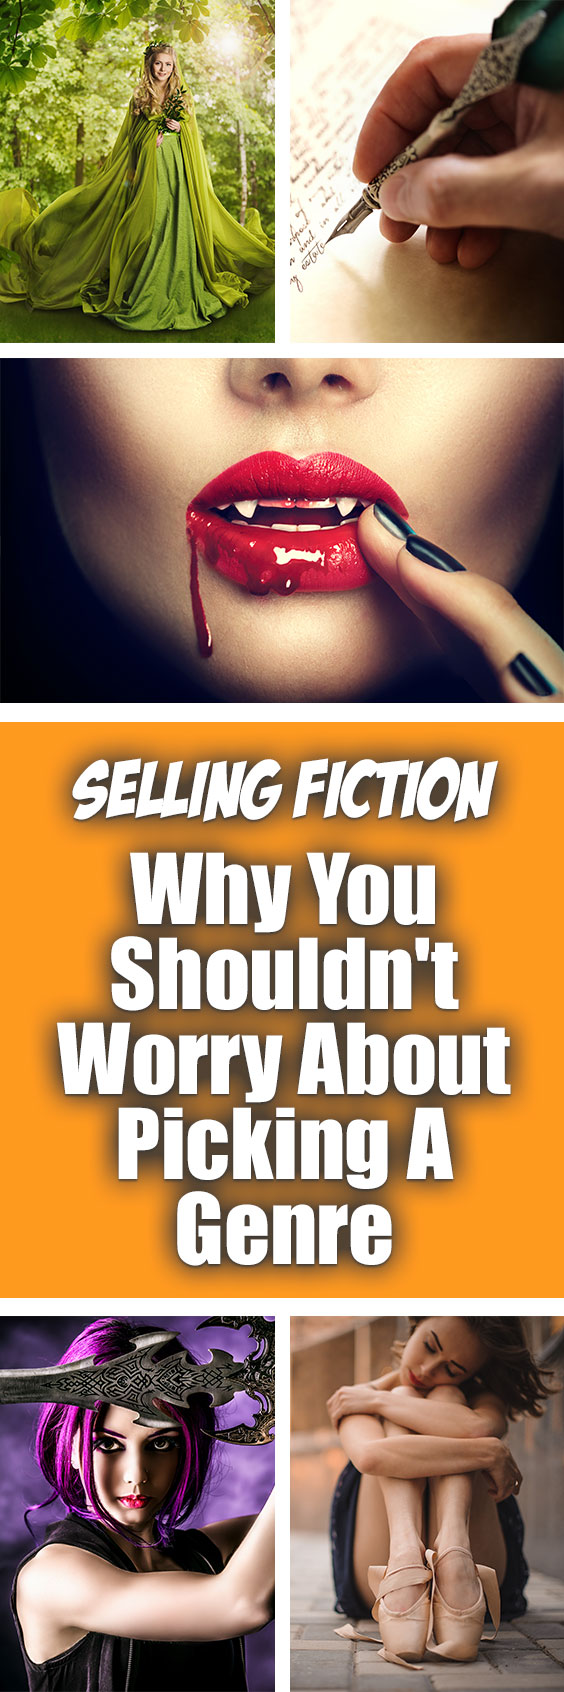 Selling Fiction - Why You Shouldn't Worry About Picking A Genre | You're selling fiction and are writing a new book, or thinking about a plot and characters for a new one, and worry about choosing a genre for your book.  Worse yet, your ideas for your storyline aren't staying in one specific genre and the mental gymnastics you are going through to reign it in are making you crazy. Should you be worrying about genre now as you write or plan your new book?